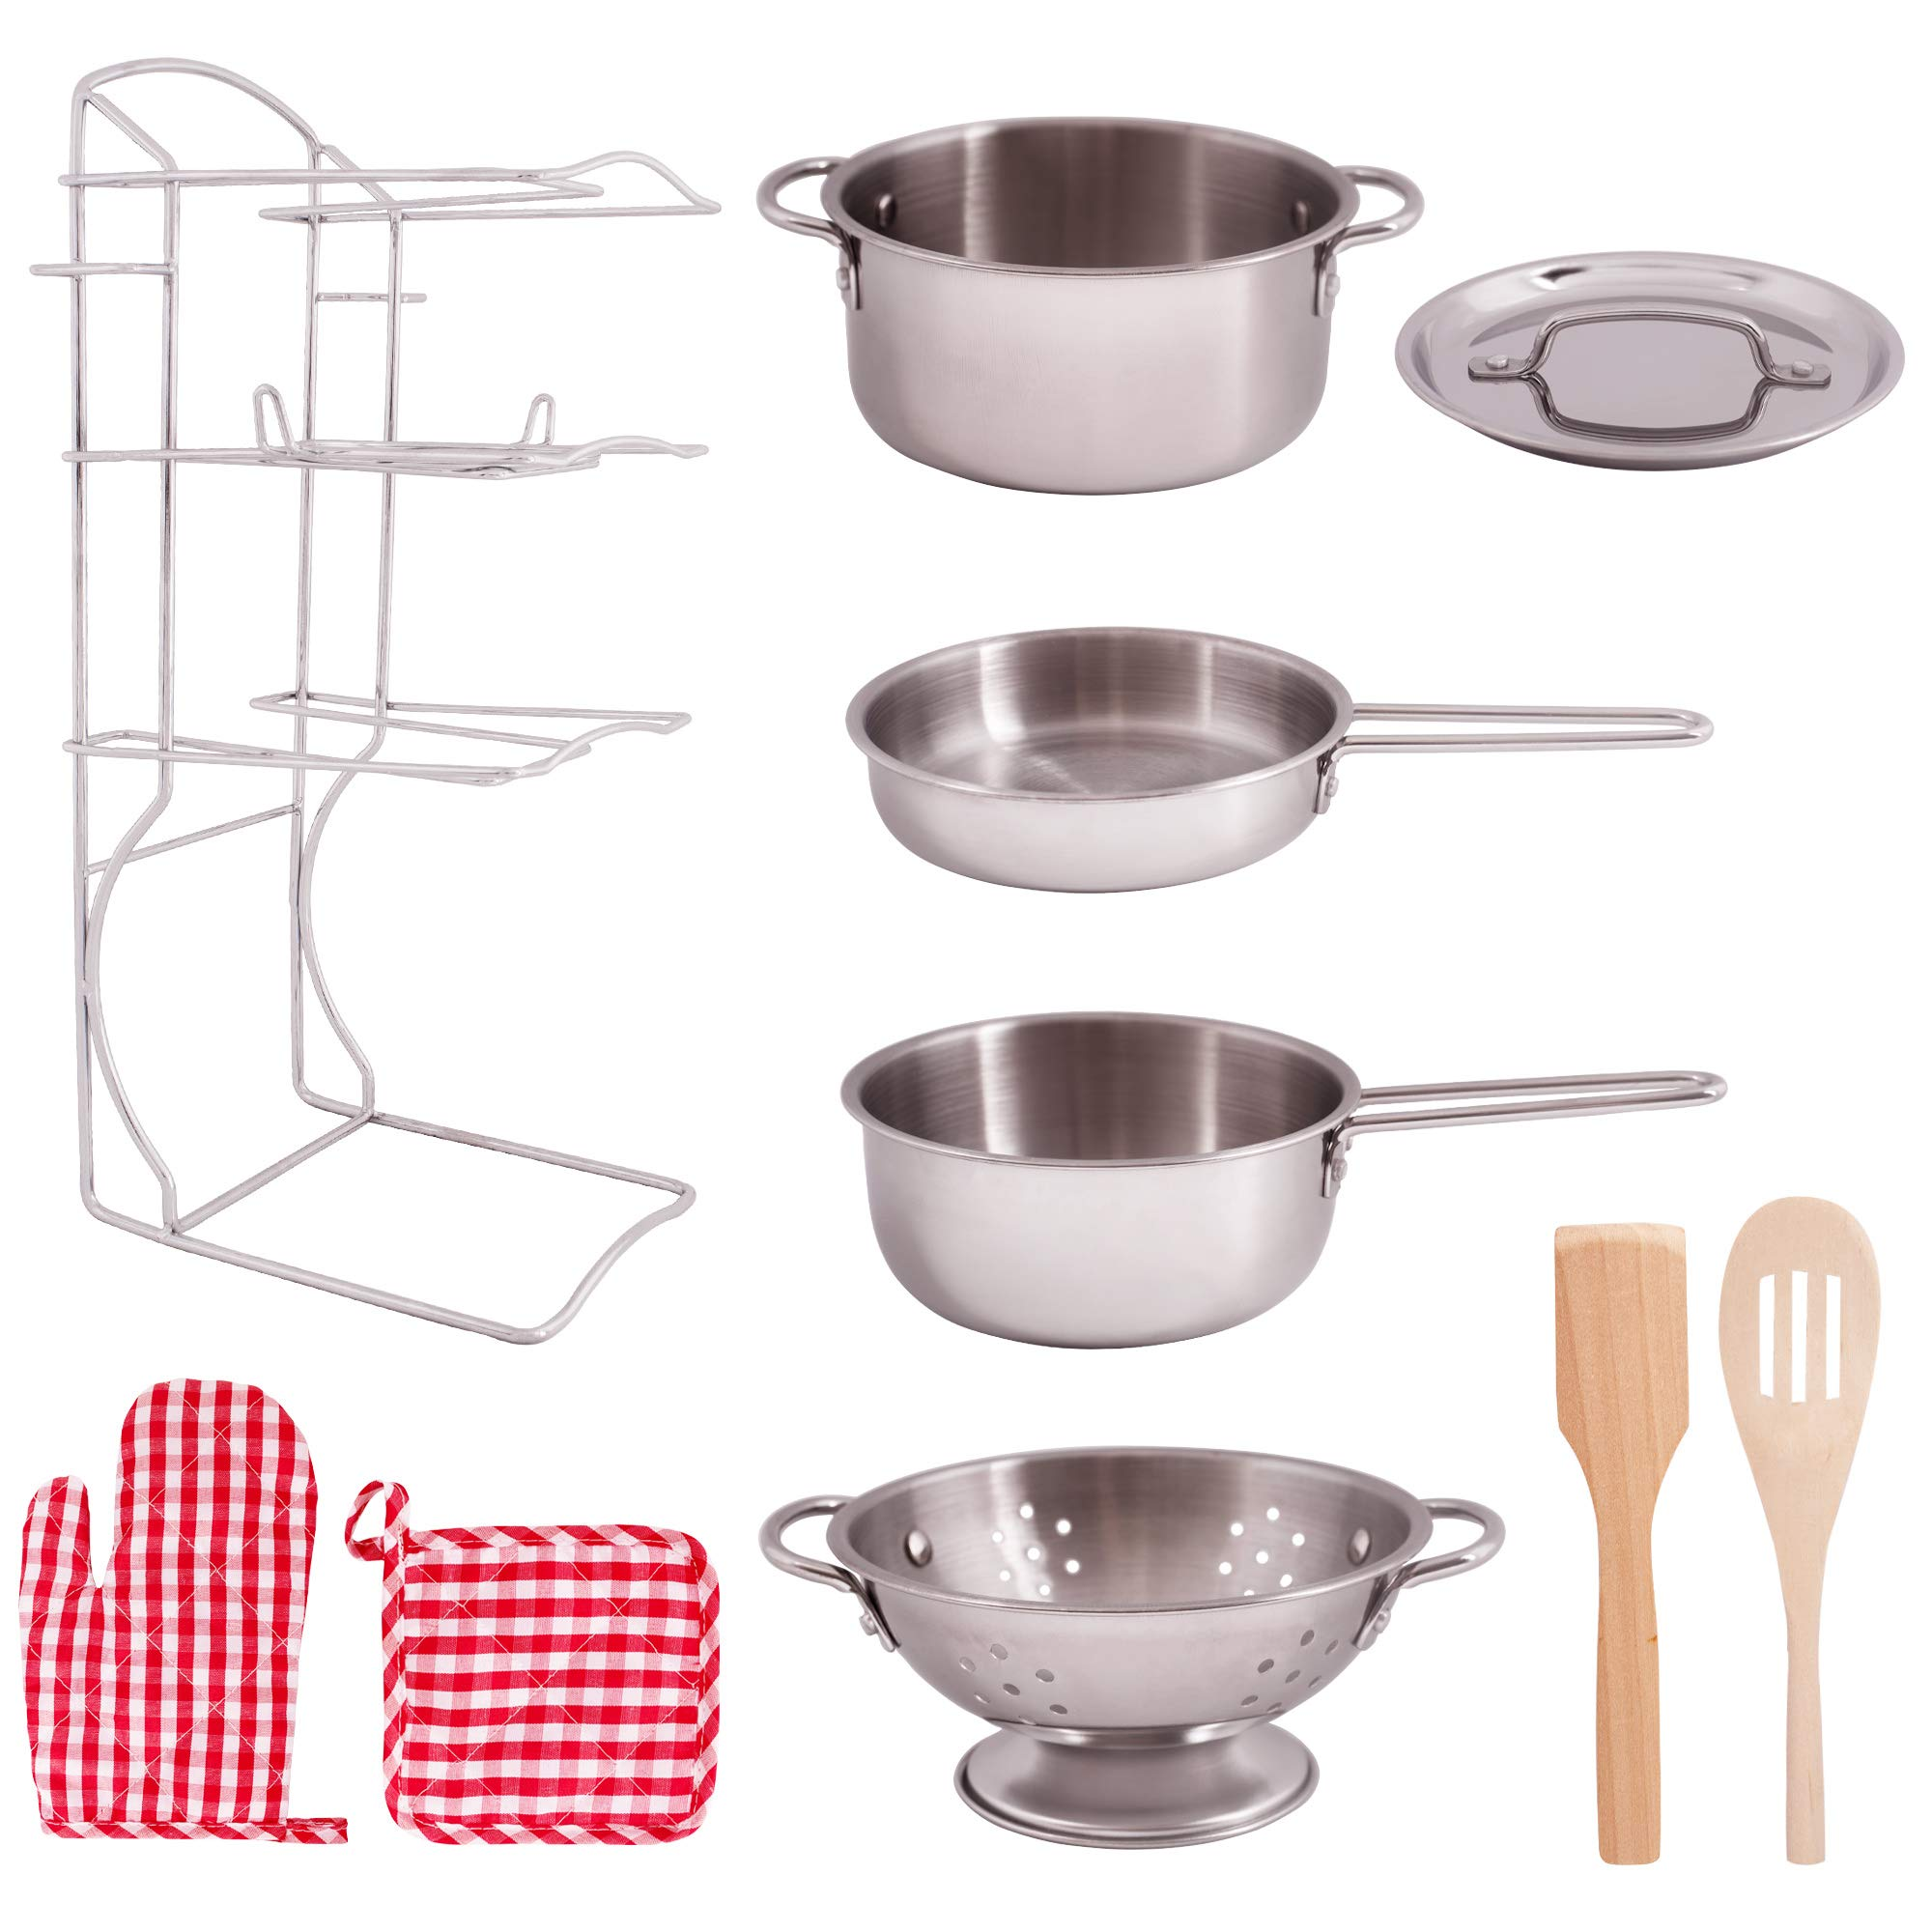 Giantville Toy Kitchen Play Set, 10 Piece Bundle - Stainless Steel Pots, Pans and Skillets, Wooden Spoons and Utensils, Pot Holders and Storage Caddy Rack